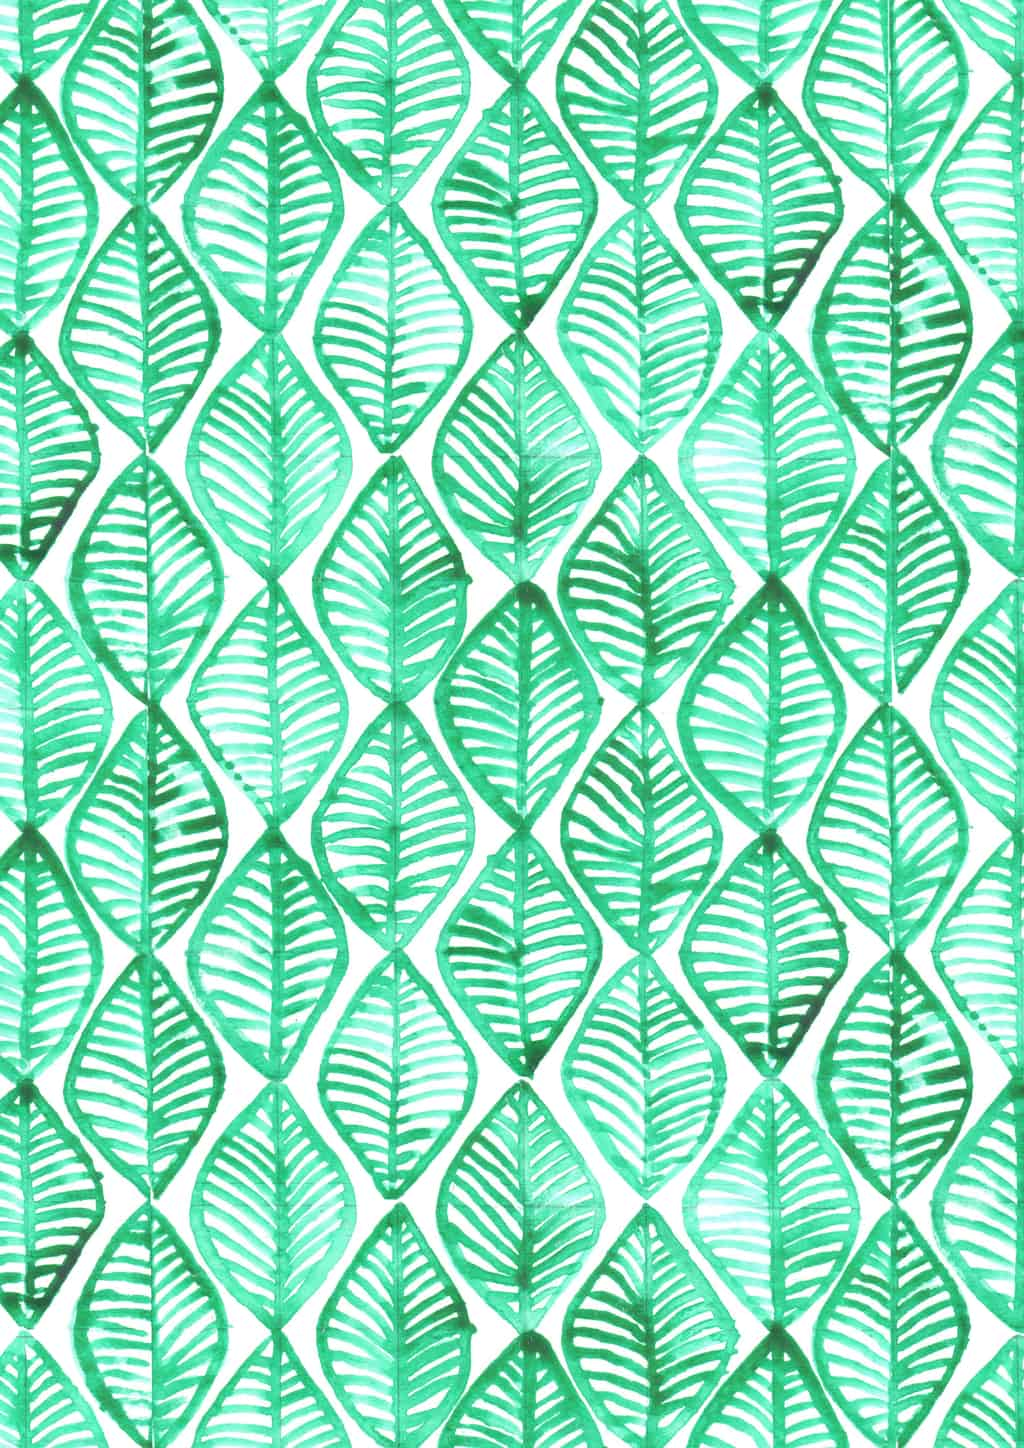 Repeating patterns with watercolour